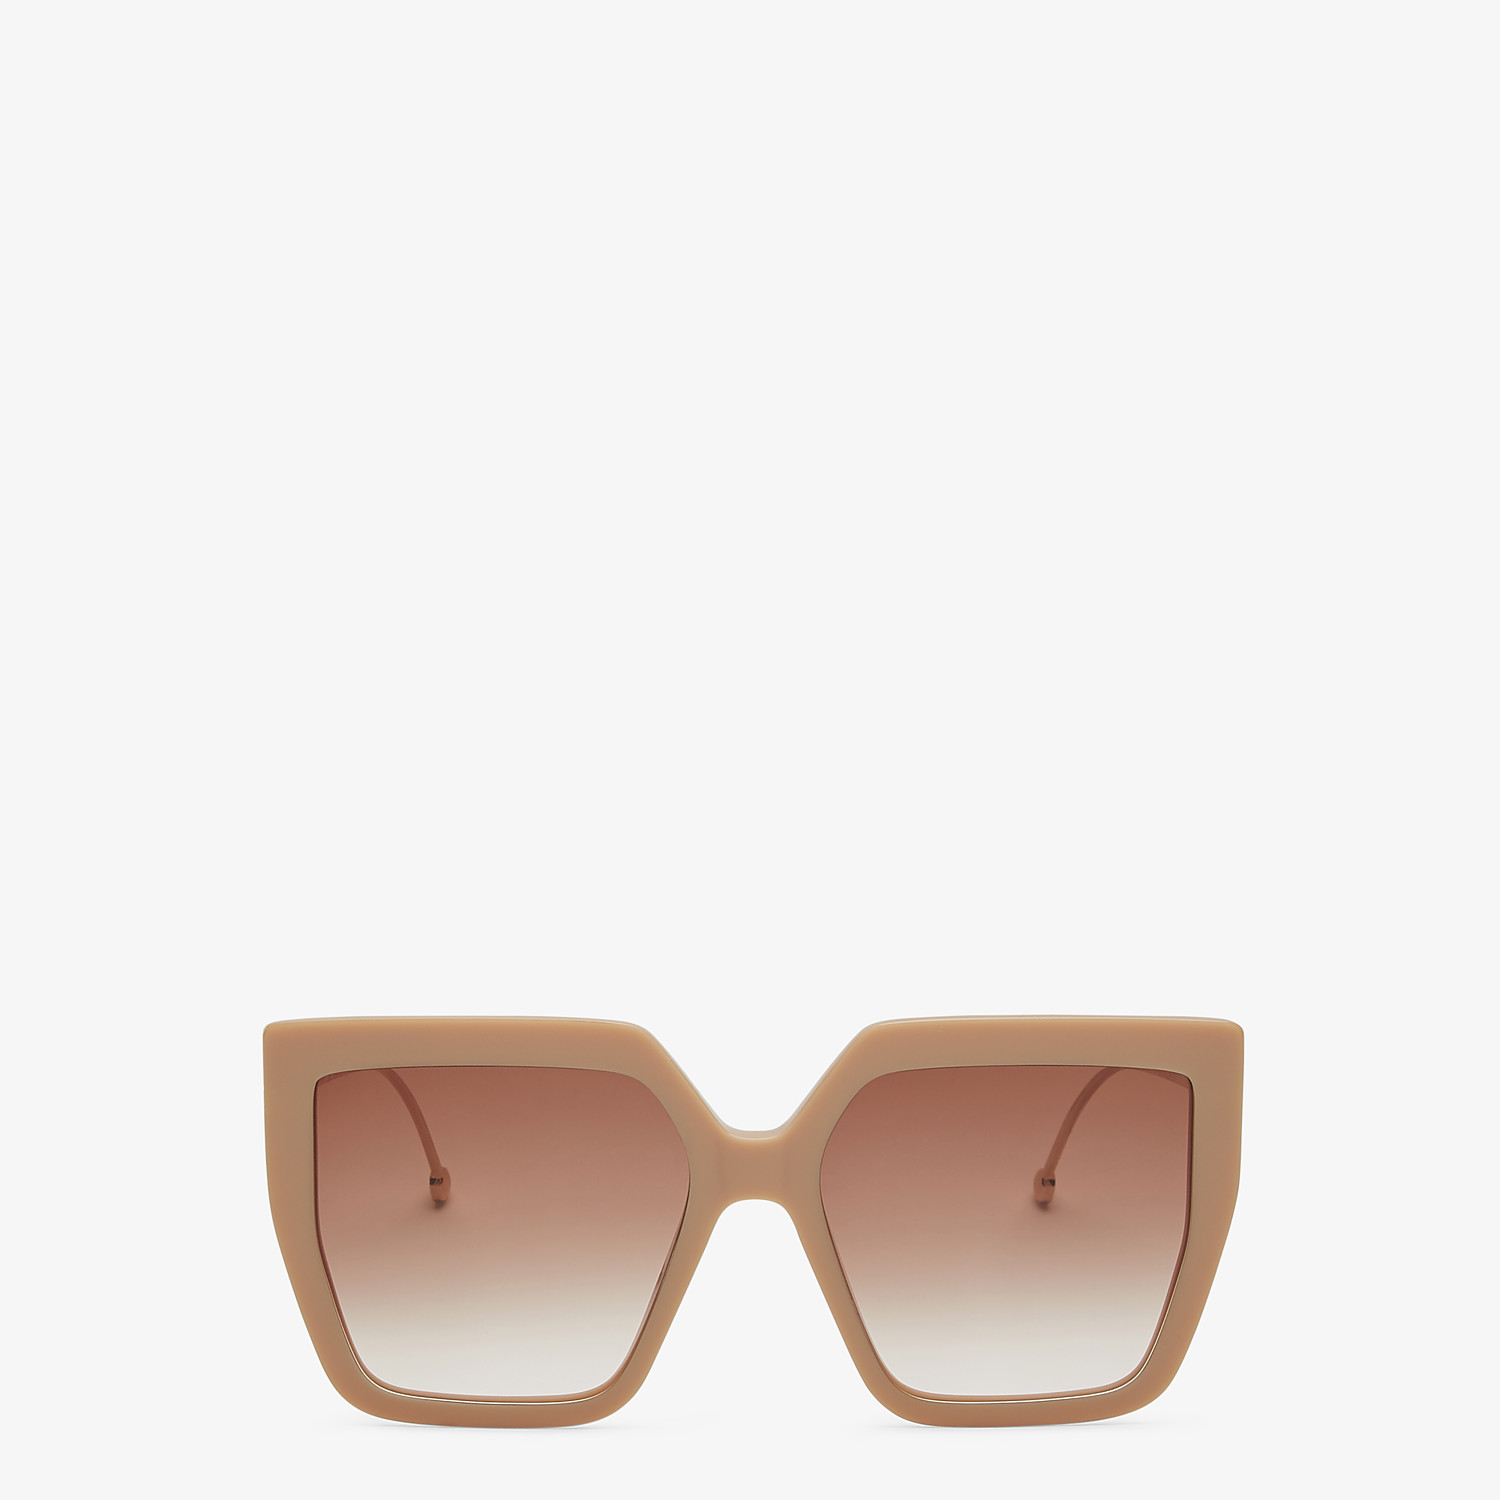 FENDI F IS FENDI - Beige acetate and metal sunglasses - view 1 detail